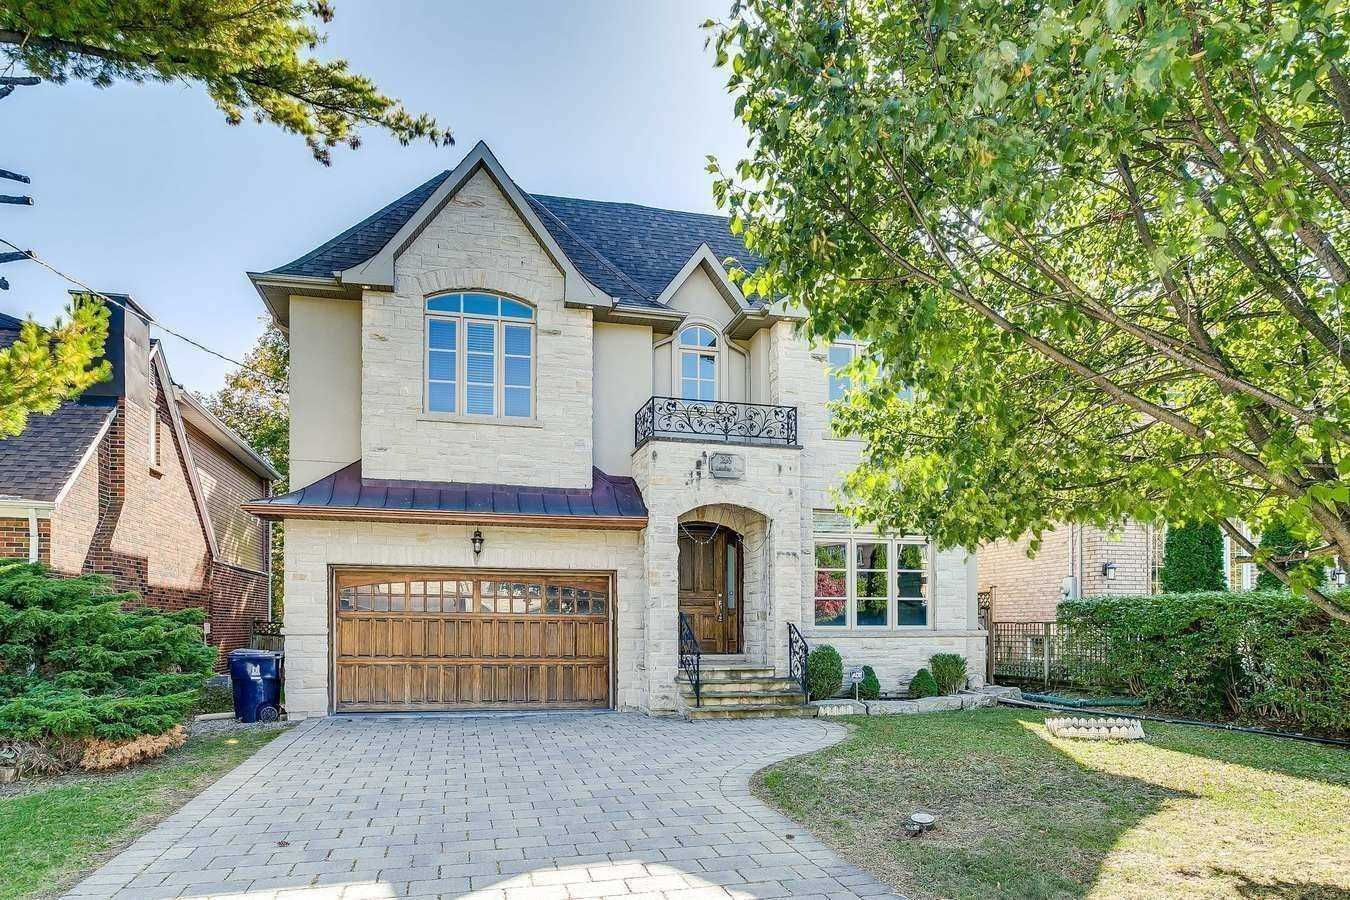 For Sale: 259 Dunview Avenue, Toronto, ON   4 Bed, 7 Bath House for $3185000.00. See 20 photos!